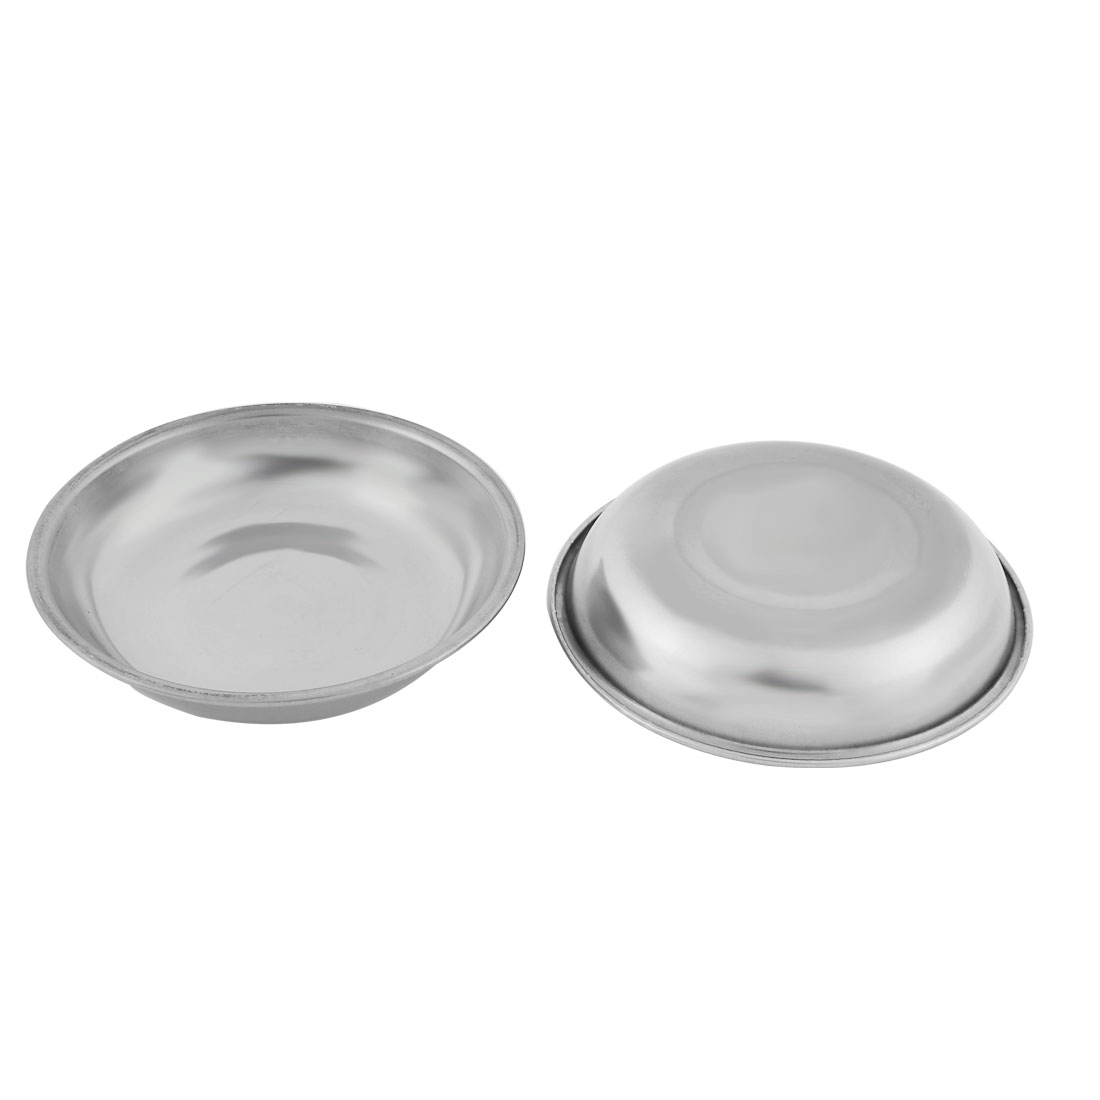 Household Metal Round Shaped Soy Sauce Spice Dipping Serving Dish Silver Tone 2 Pcs